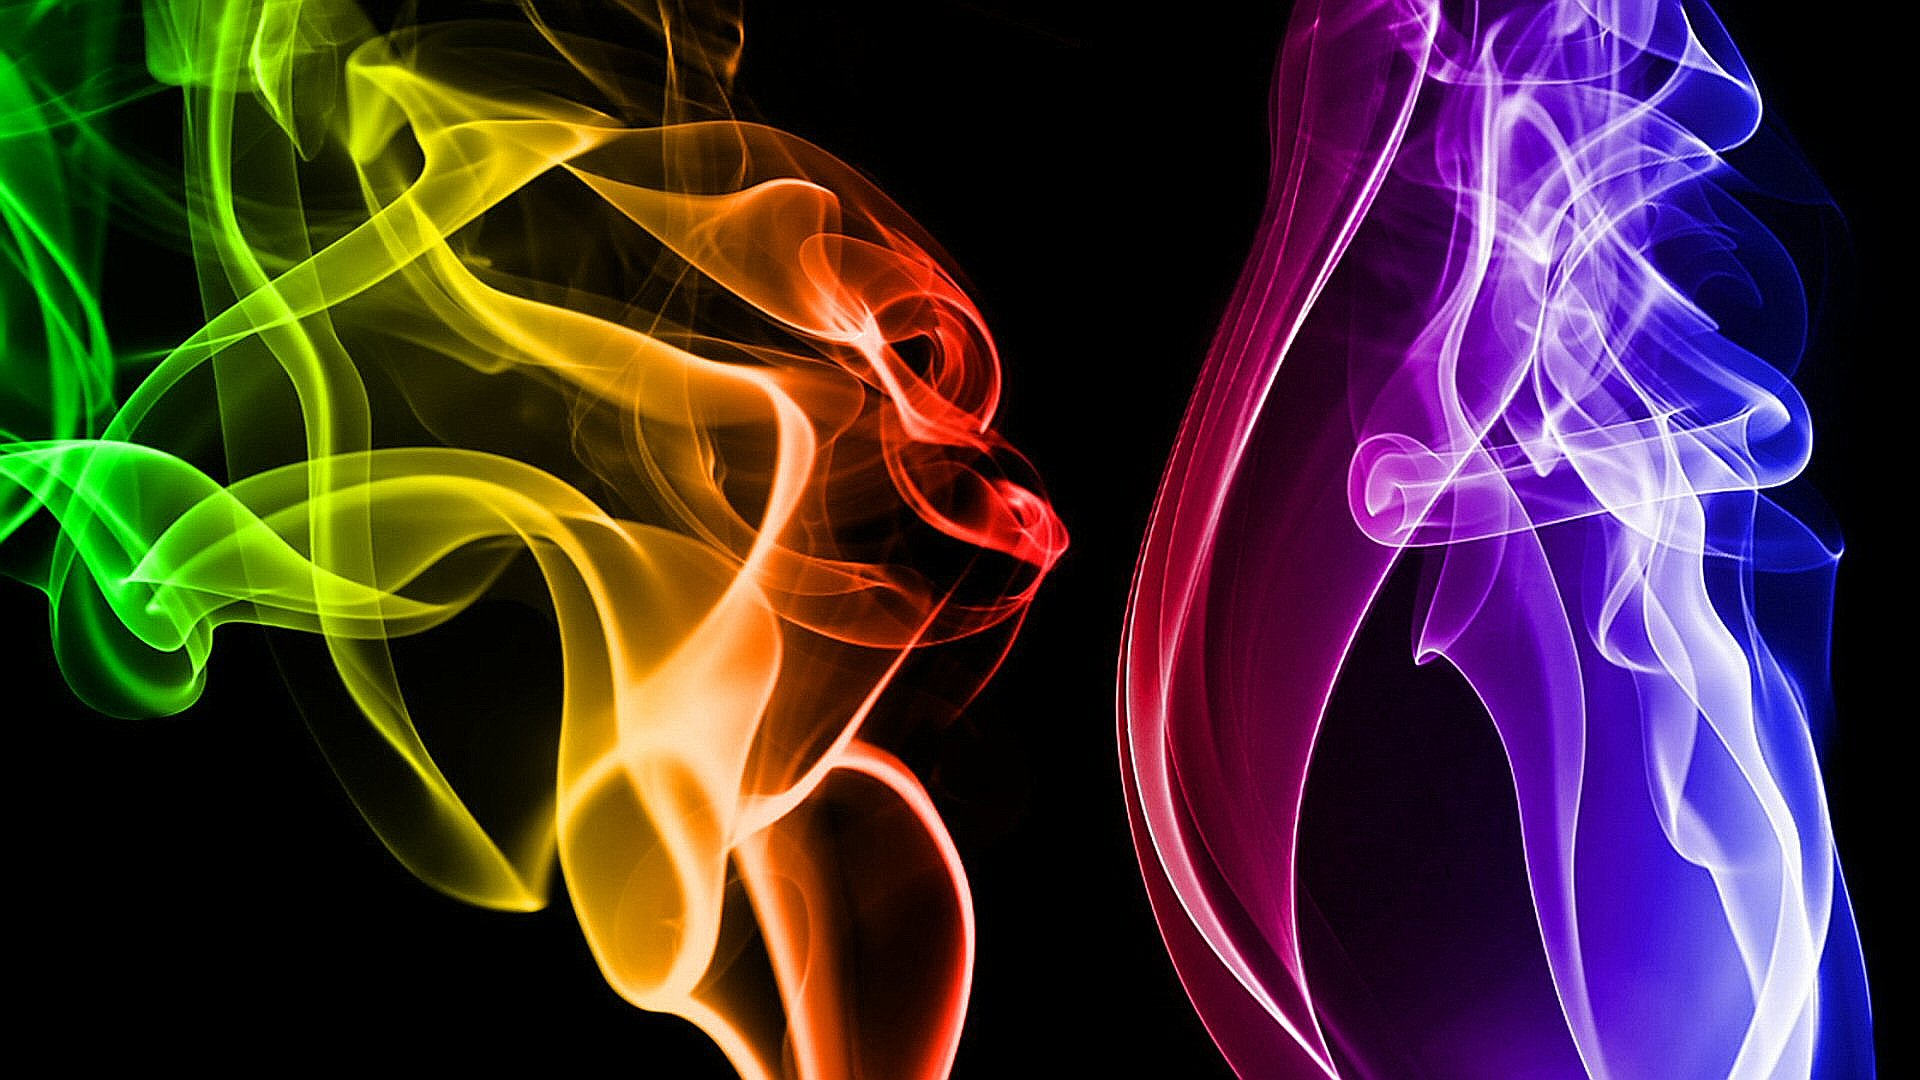 Cool Smoke Wallpaper